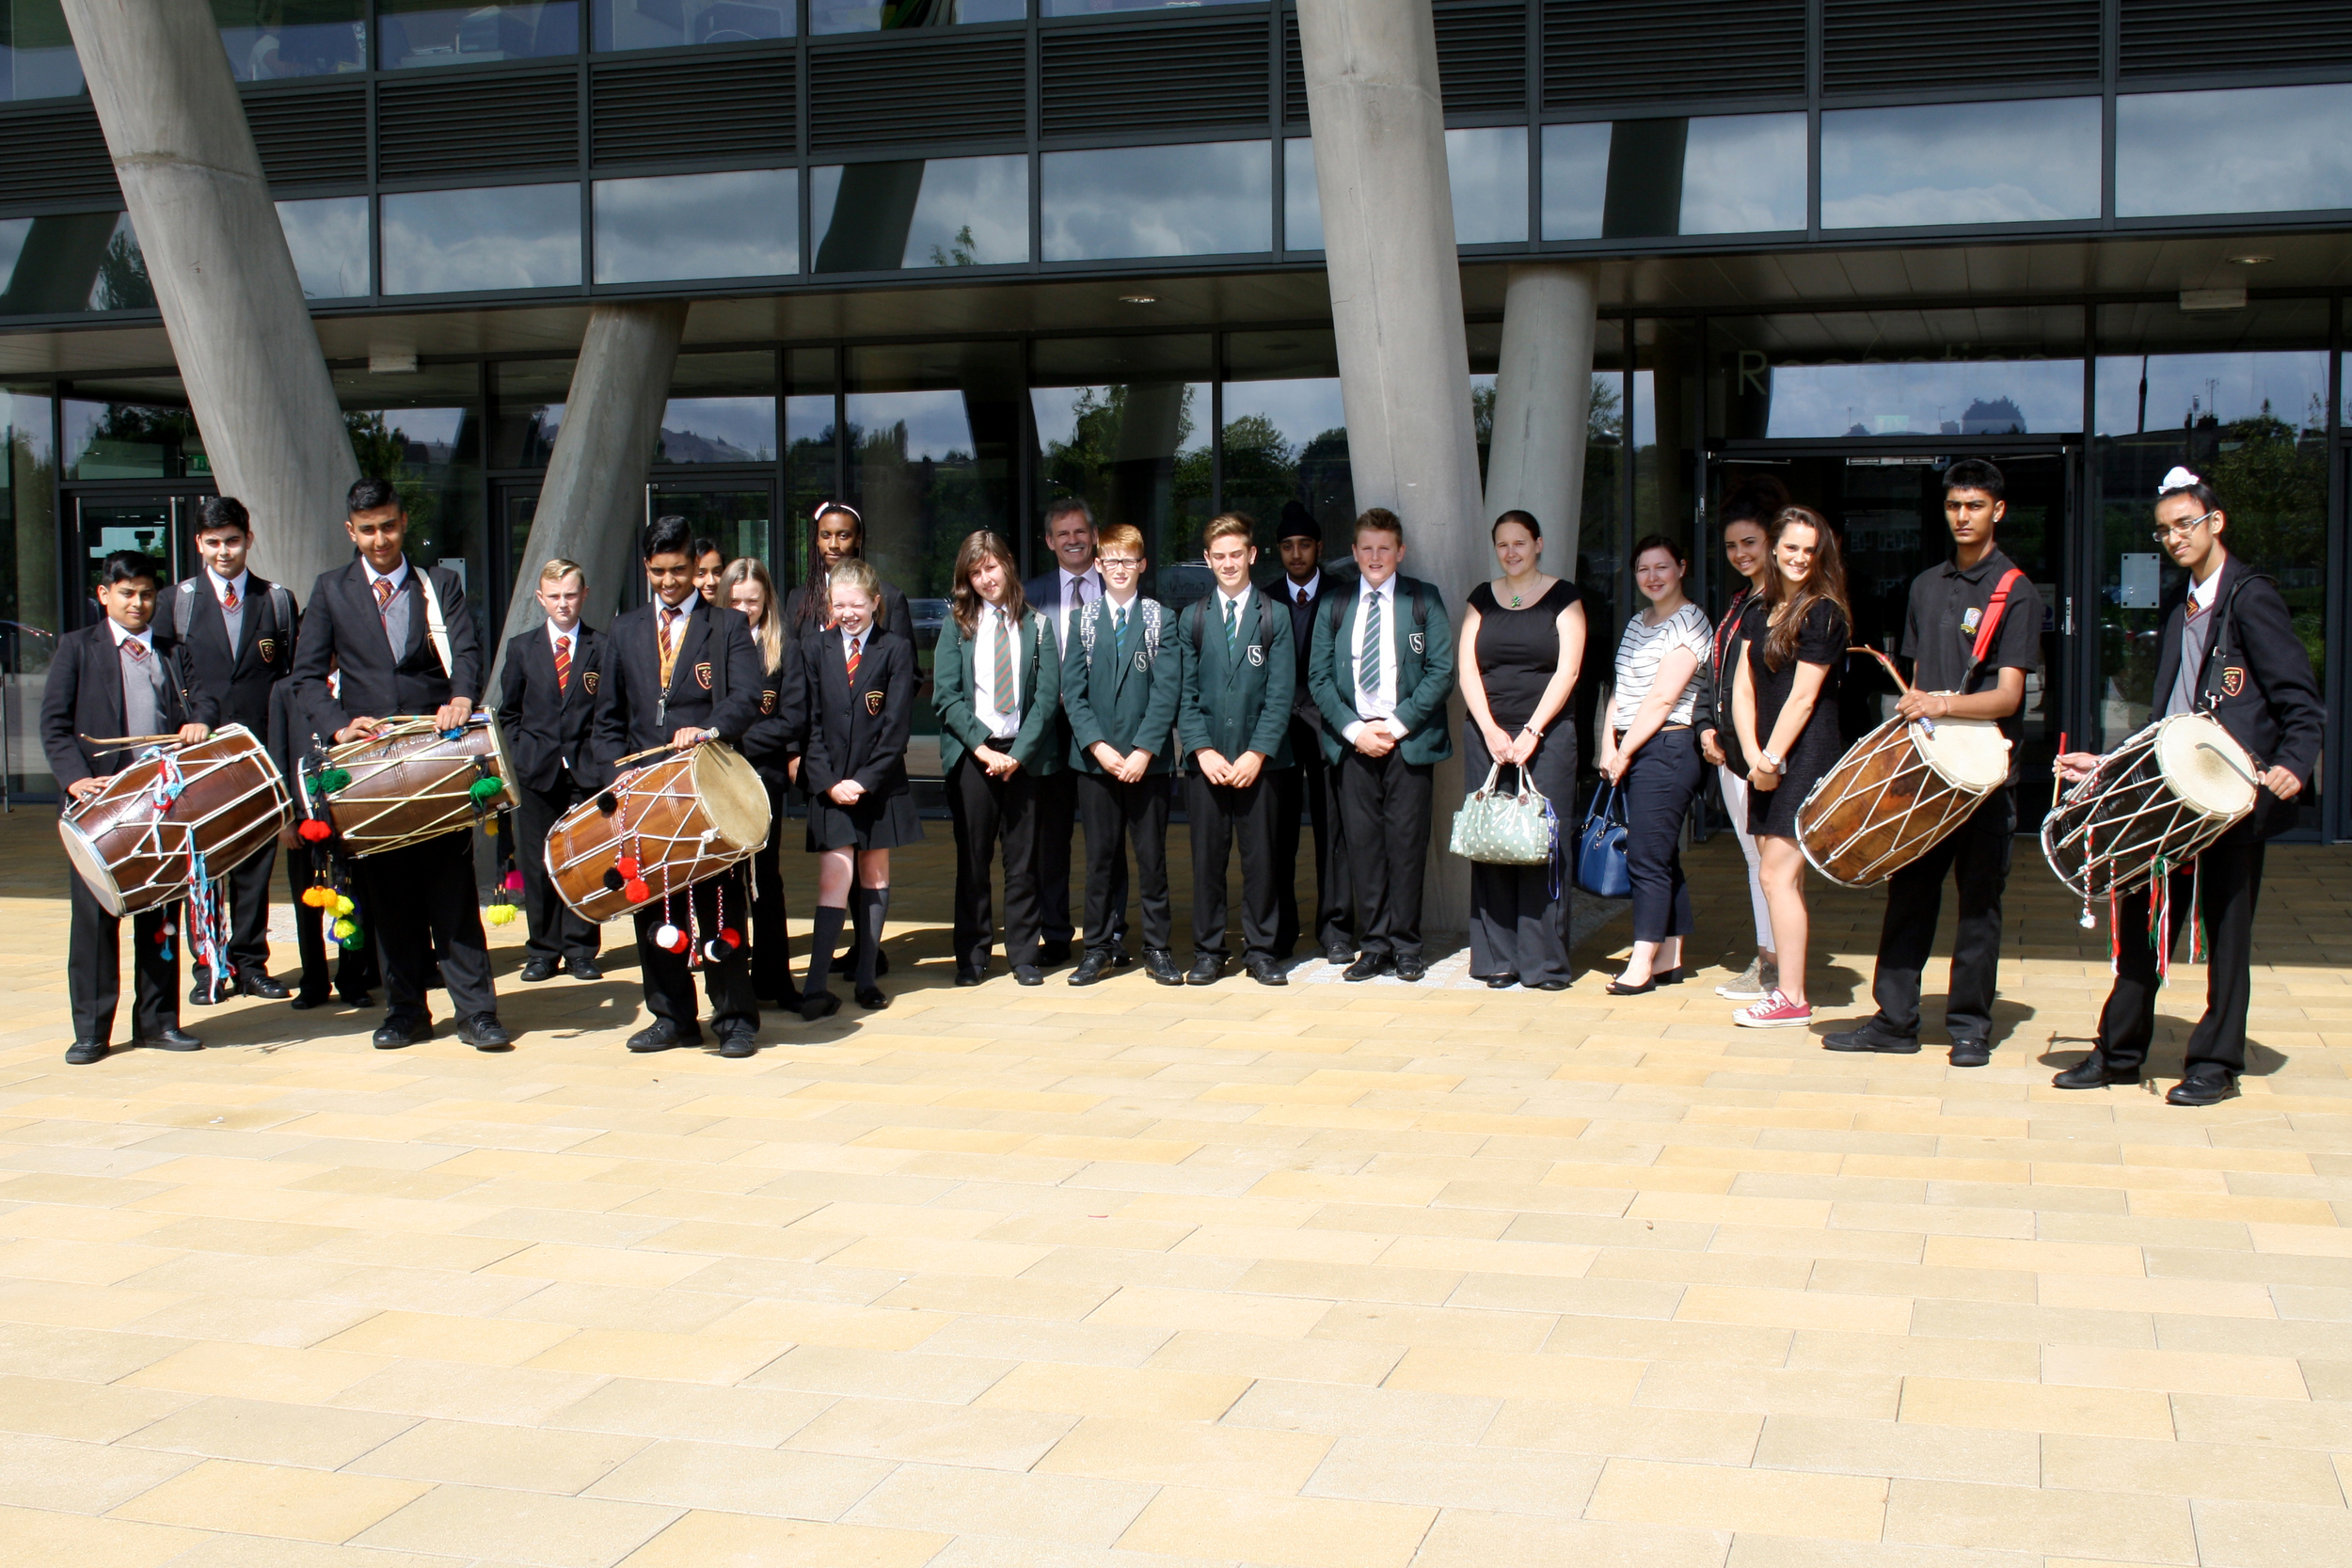 Photograph: Highfields' student guides, accompanied by Mr Jevon and a performance by our Dhol Drum group, greeted our visitors from Southam College.